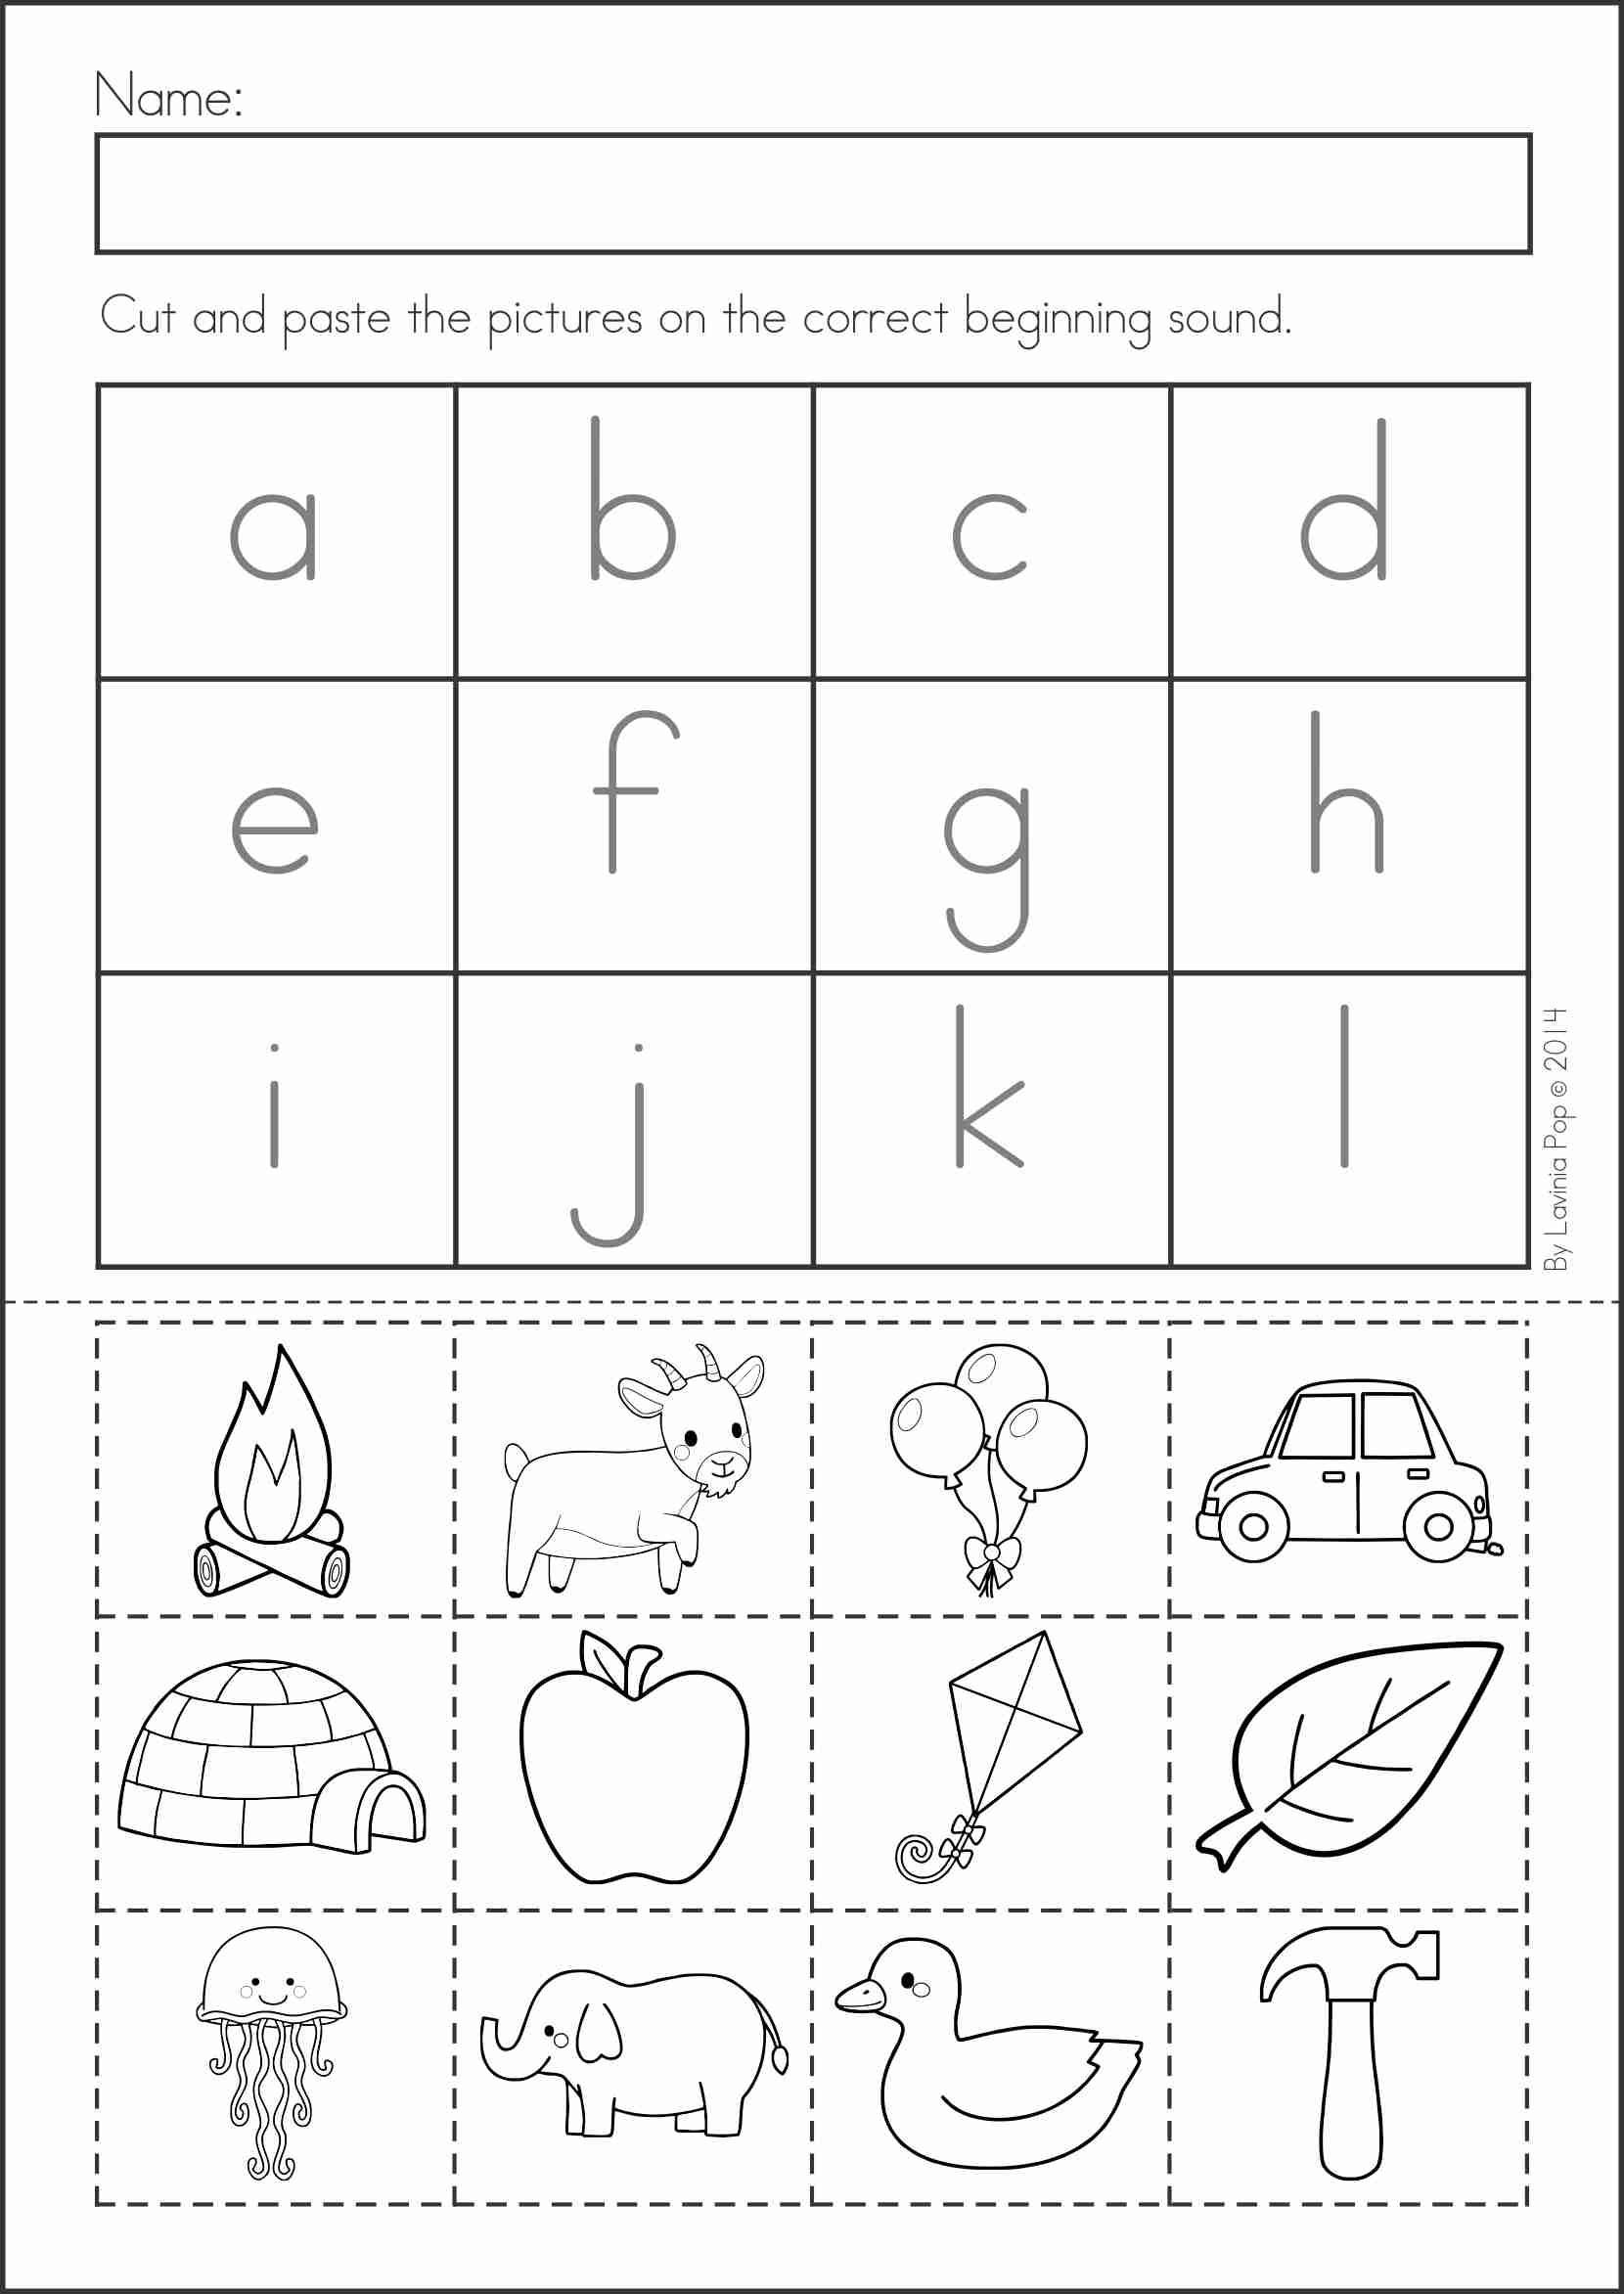 worksheet Initial Sound Worksheets summer review literacy worksheets math and kindergarten activities 104 pages a page from